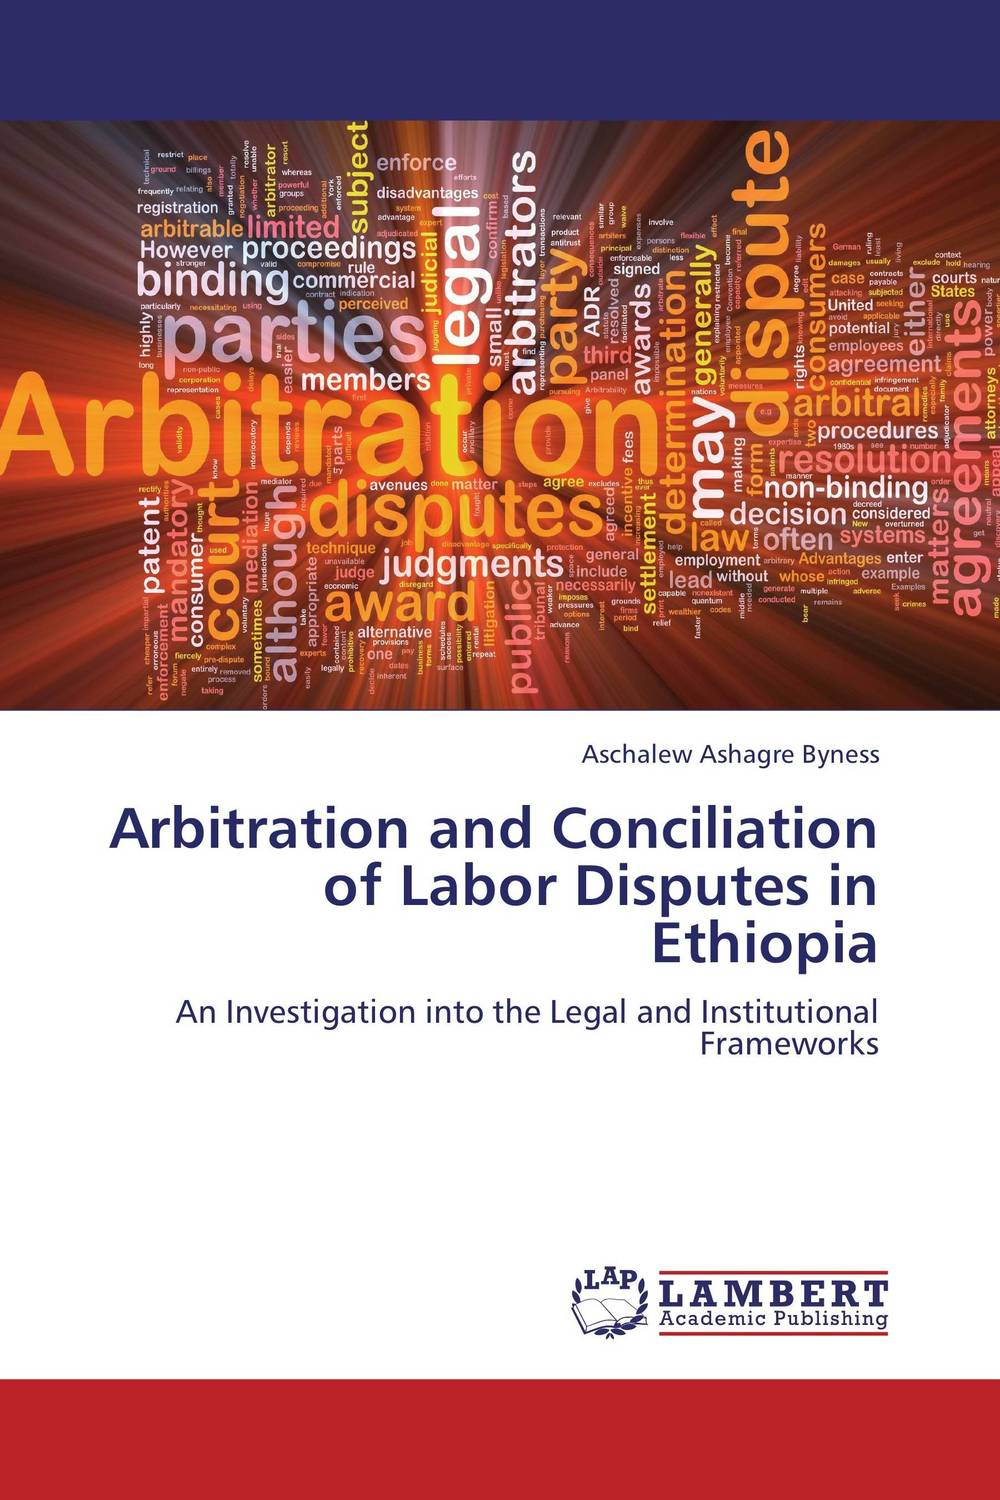 Arbitration and Conciliation of Labor Disputes in Ethiopia marta tsvengrosh arbitration and insolvency conflict of laws issues